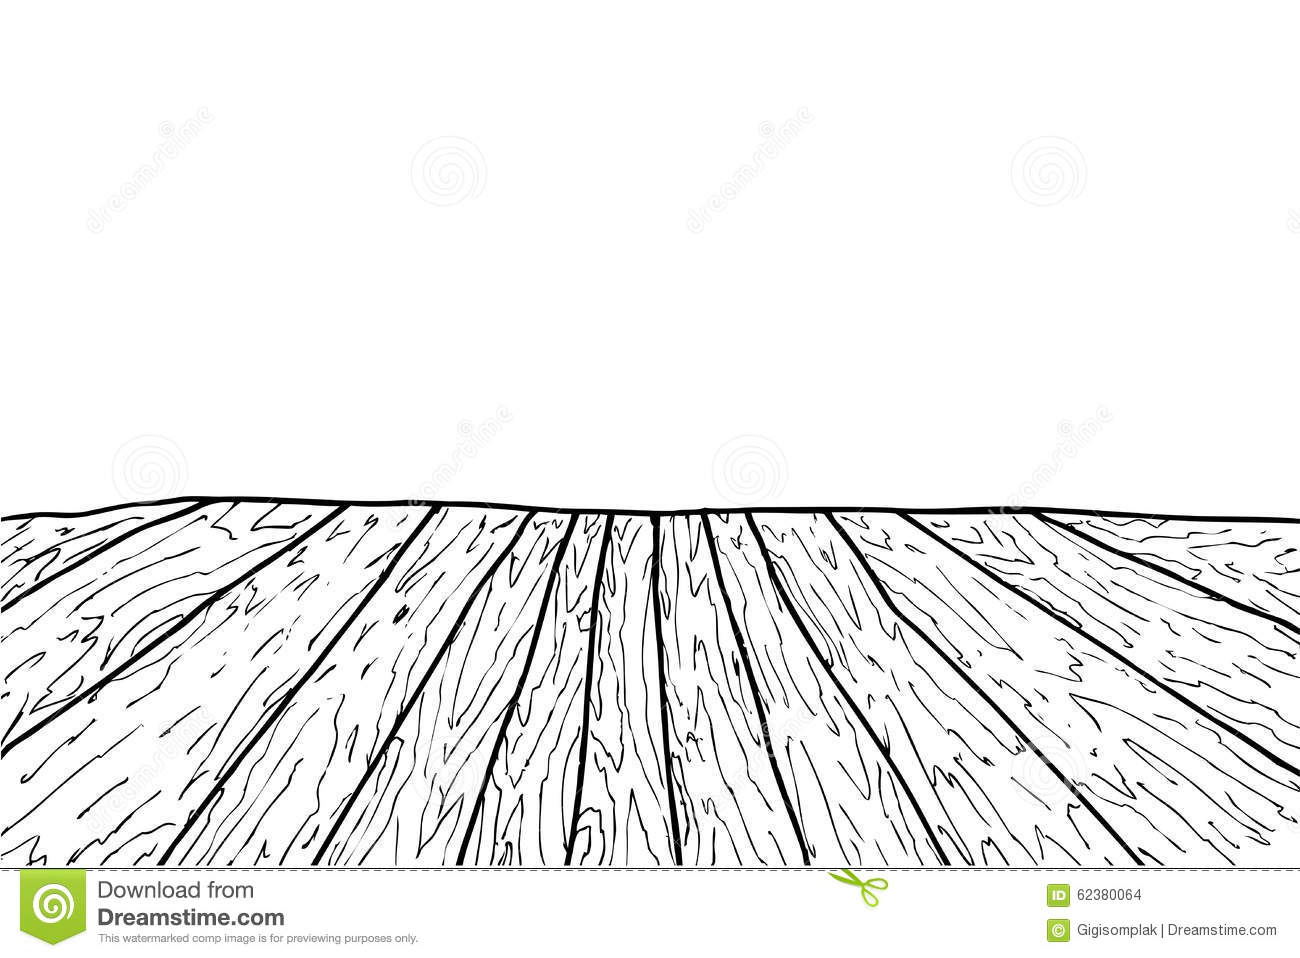 Dessin Parquet Bois Hand Draw Sketch Of Wooden Floor Stock Vector Image